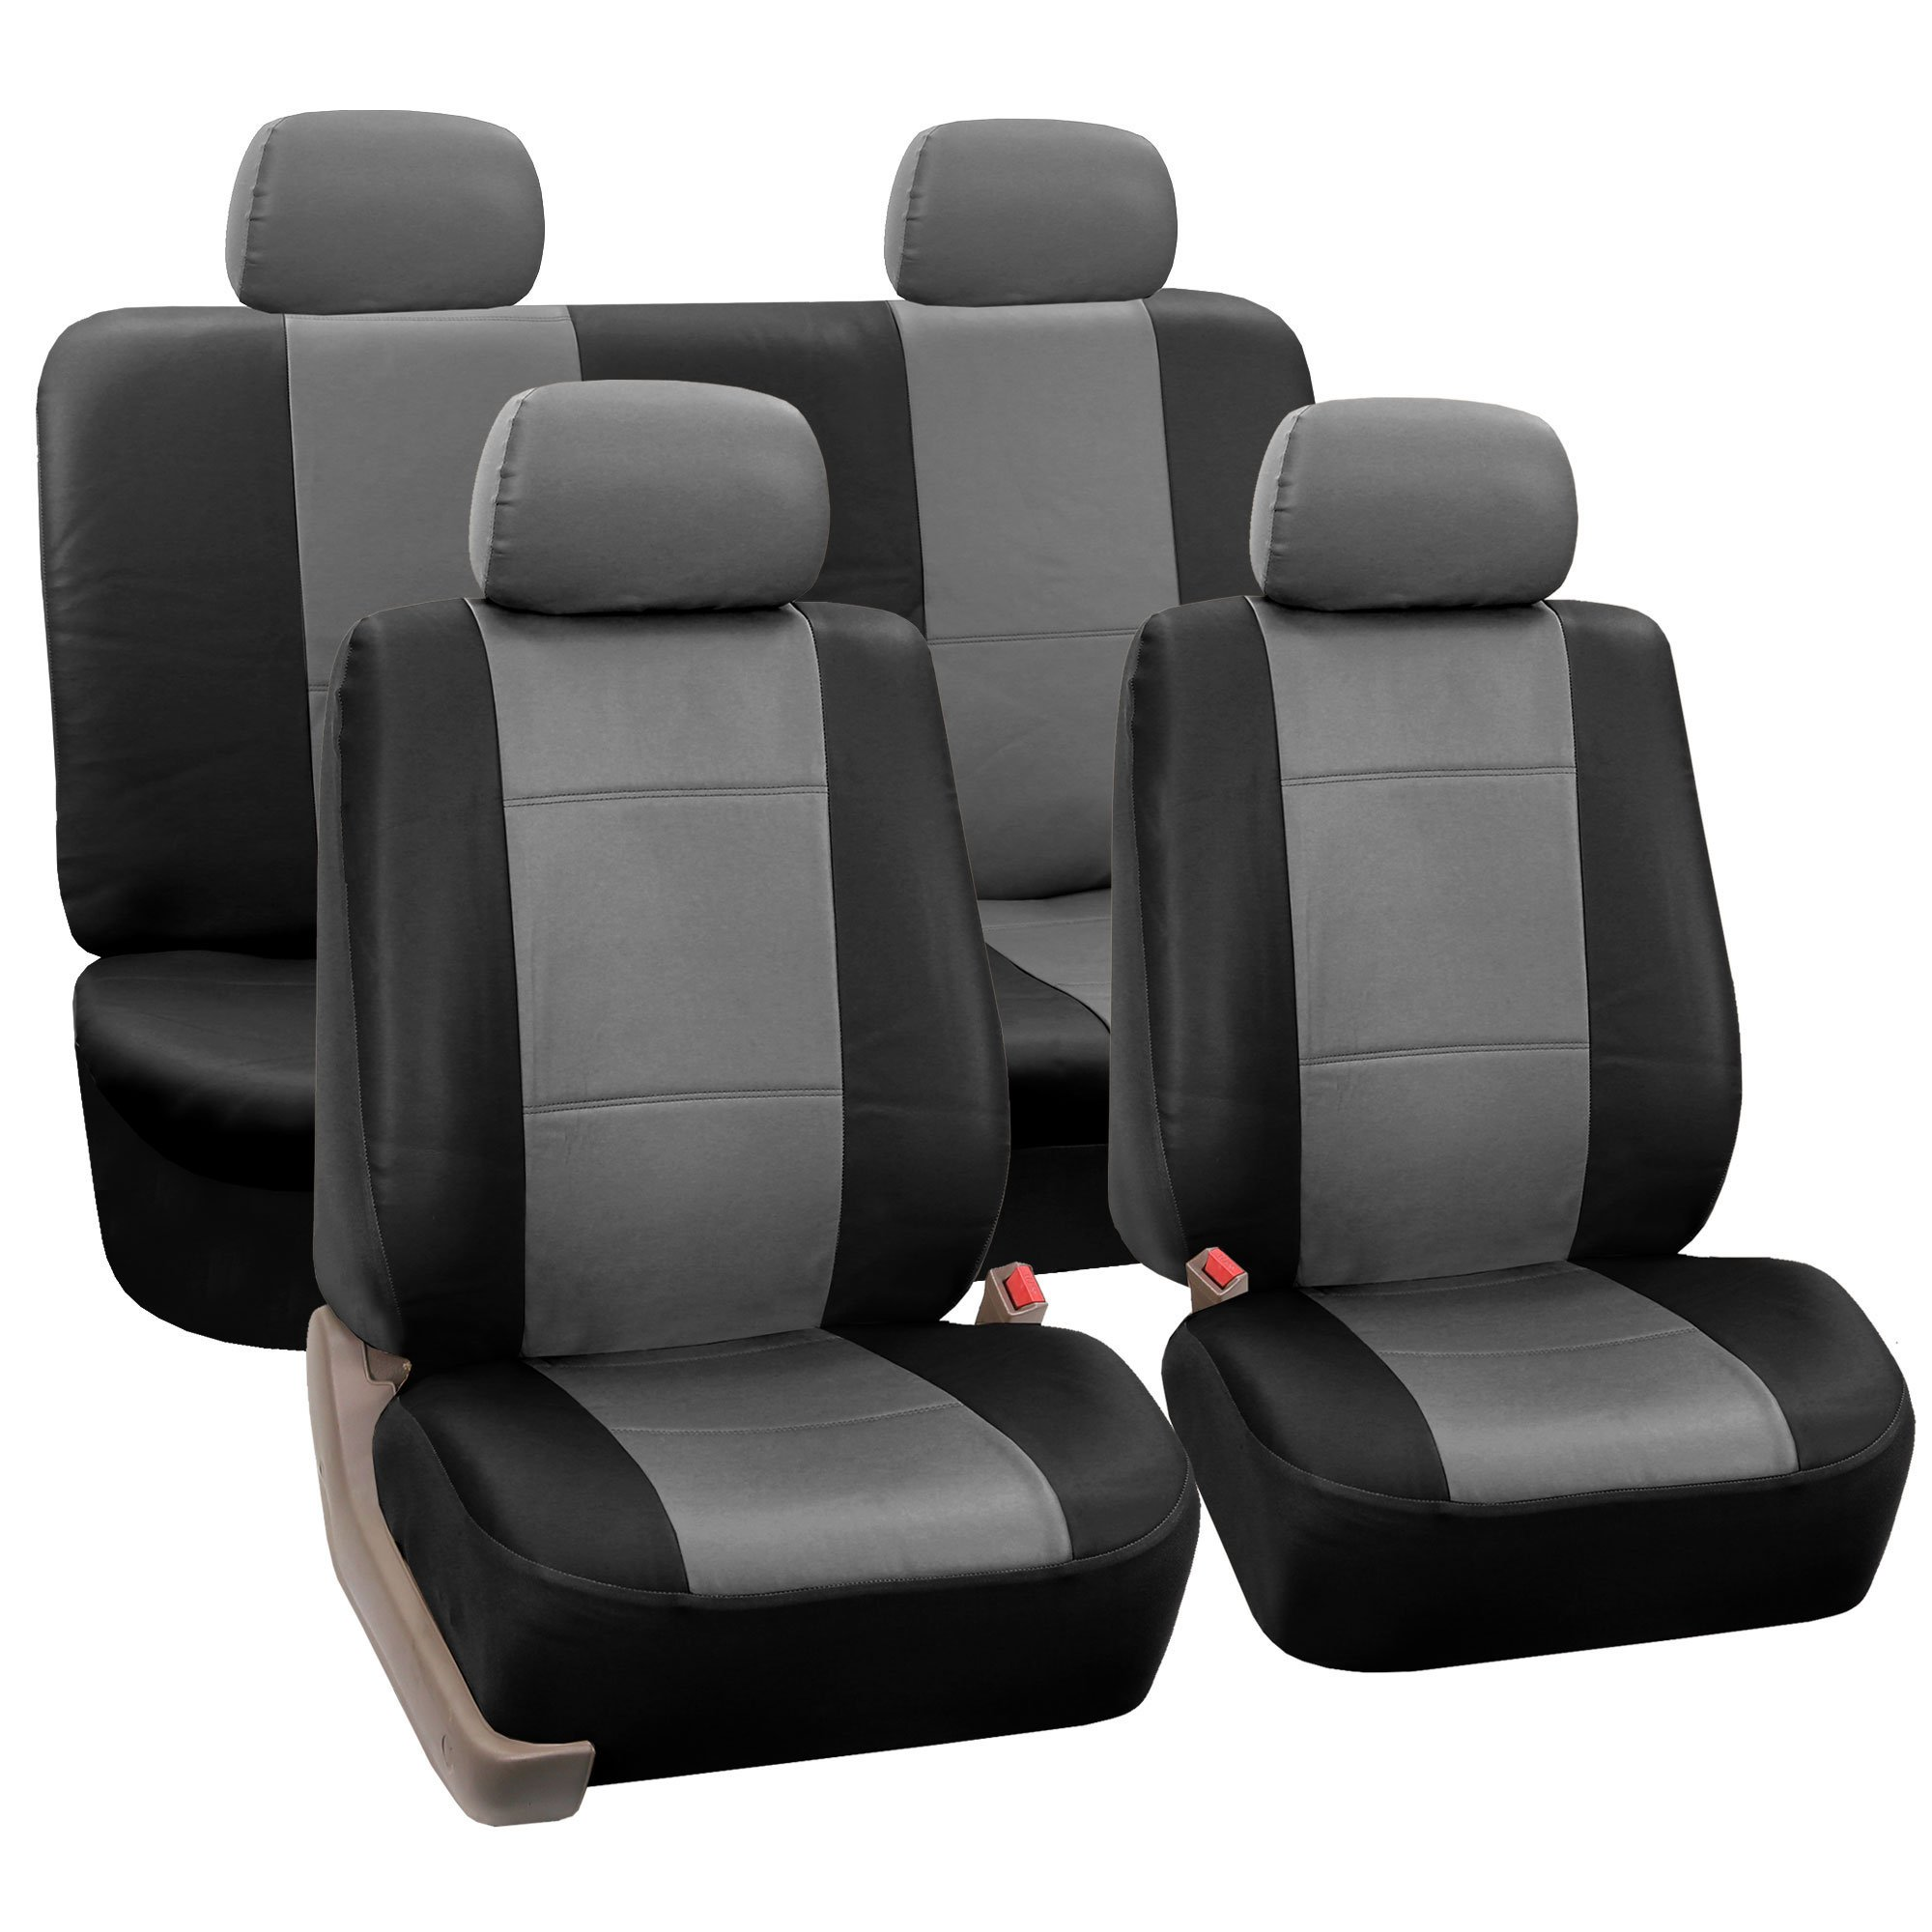 FH Group FH-PU002114 Classic PU Leather Car Seat Covers Gray/Black, Airbag Compatible and Split Bench- Fit Most Car, Truck, SUV, or Van